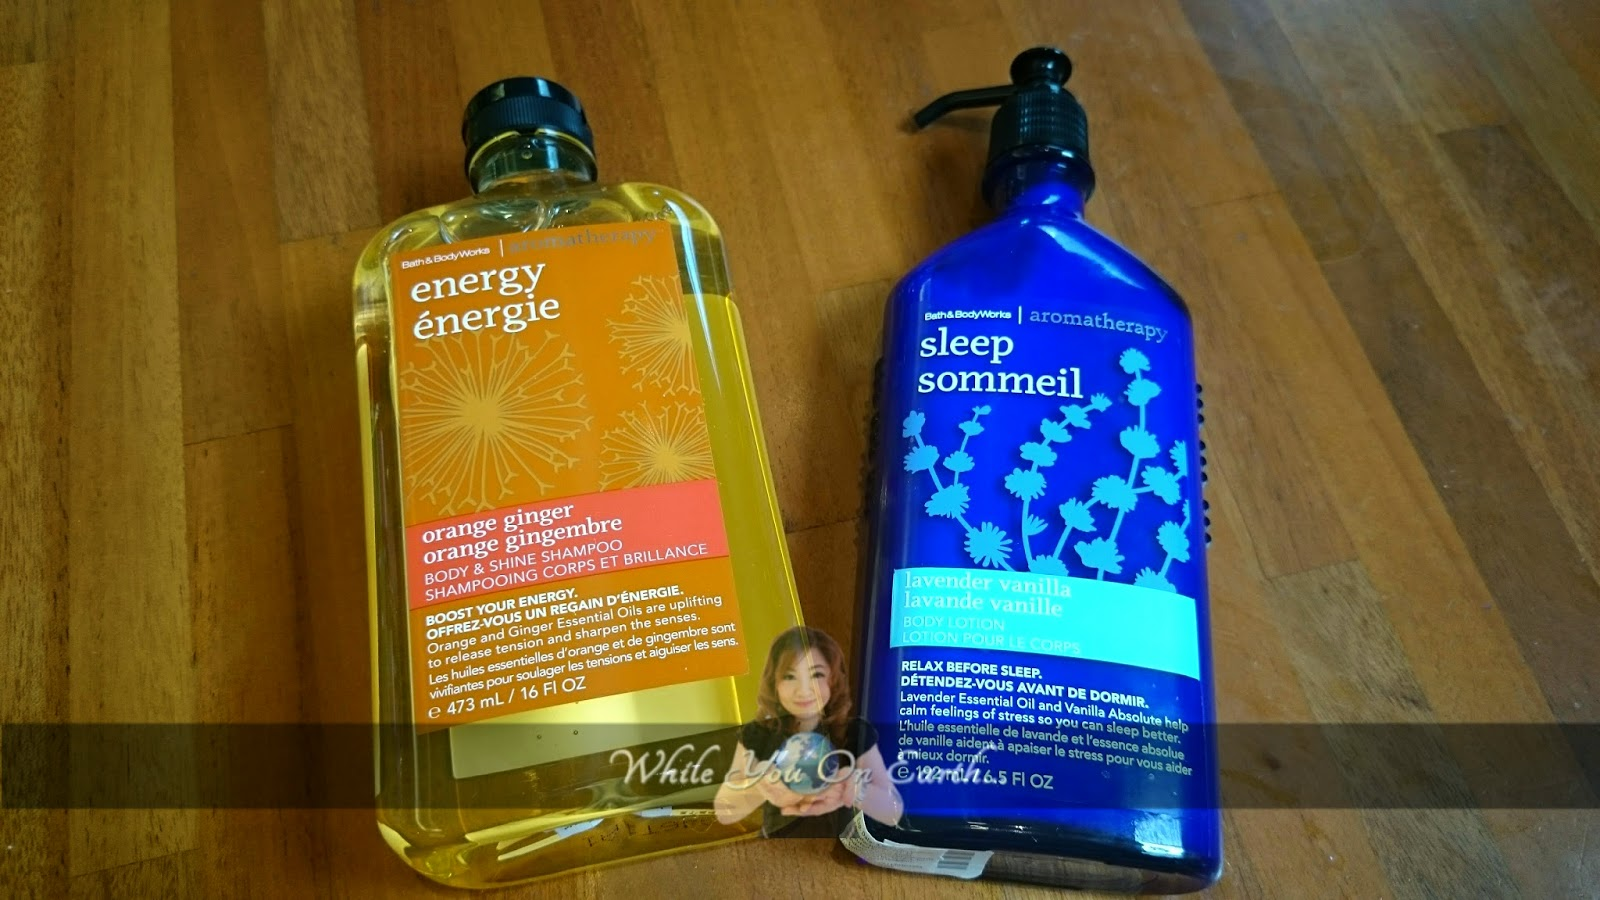 While You On Earth Bath And Body Works Sleep Sommeil Lavender Vanilla Body Lotion And Energy Orange Ginger Shampoo